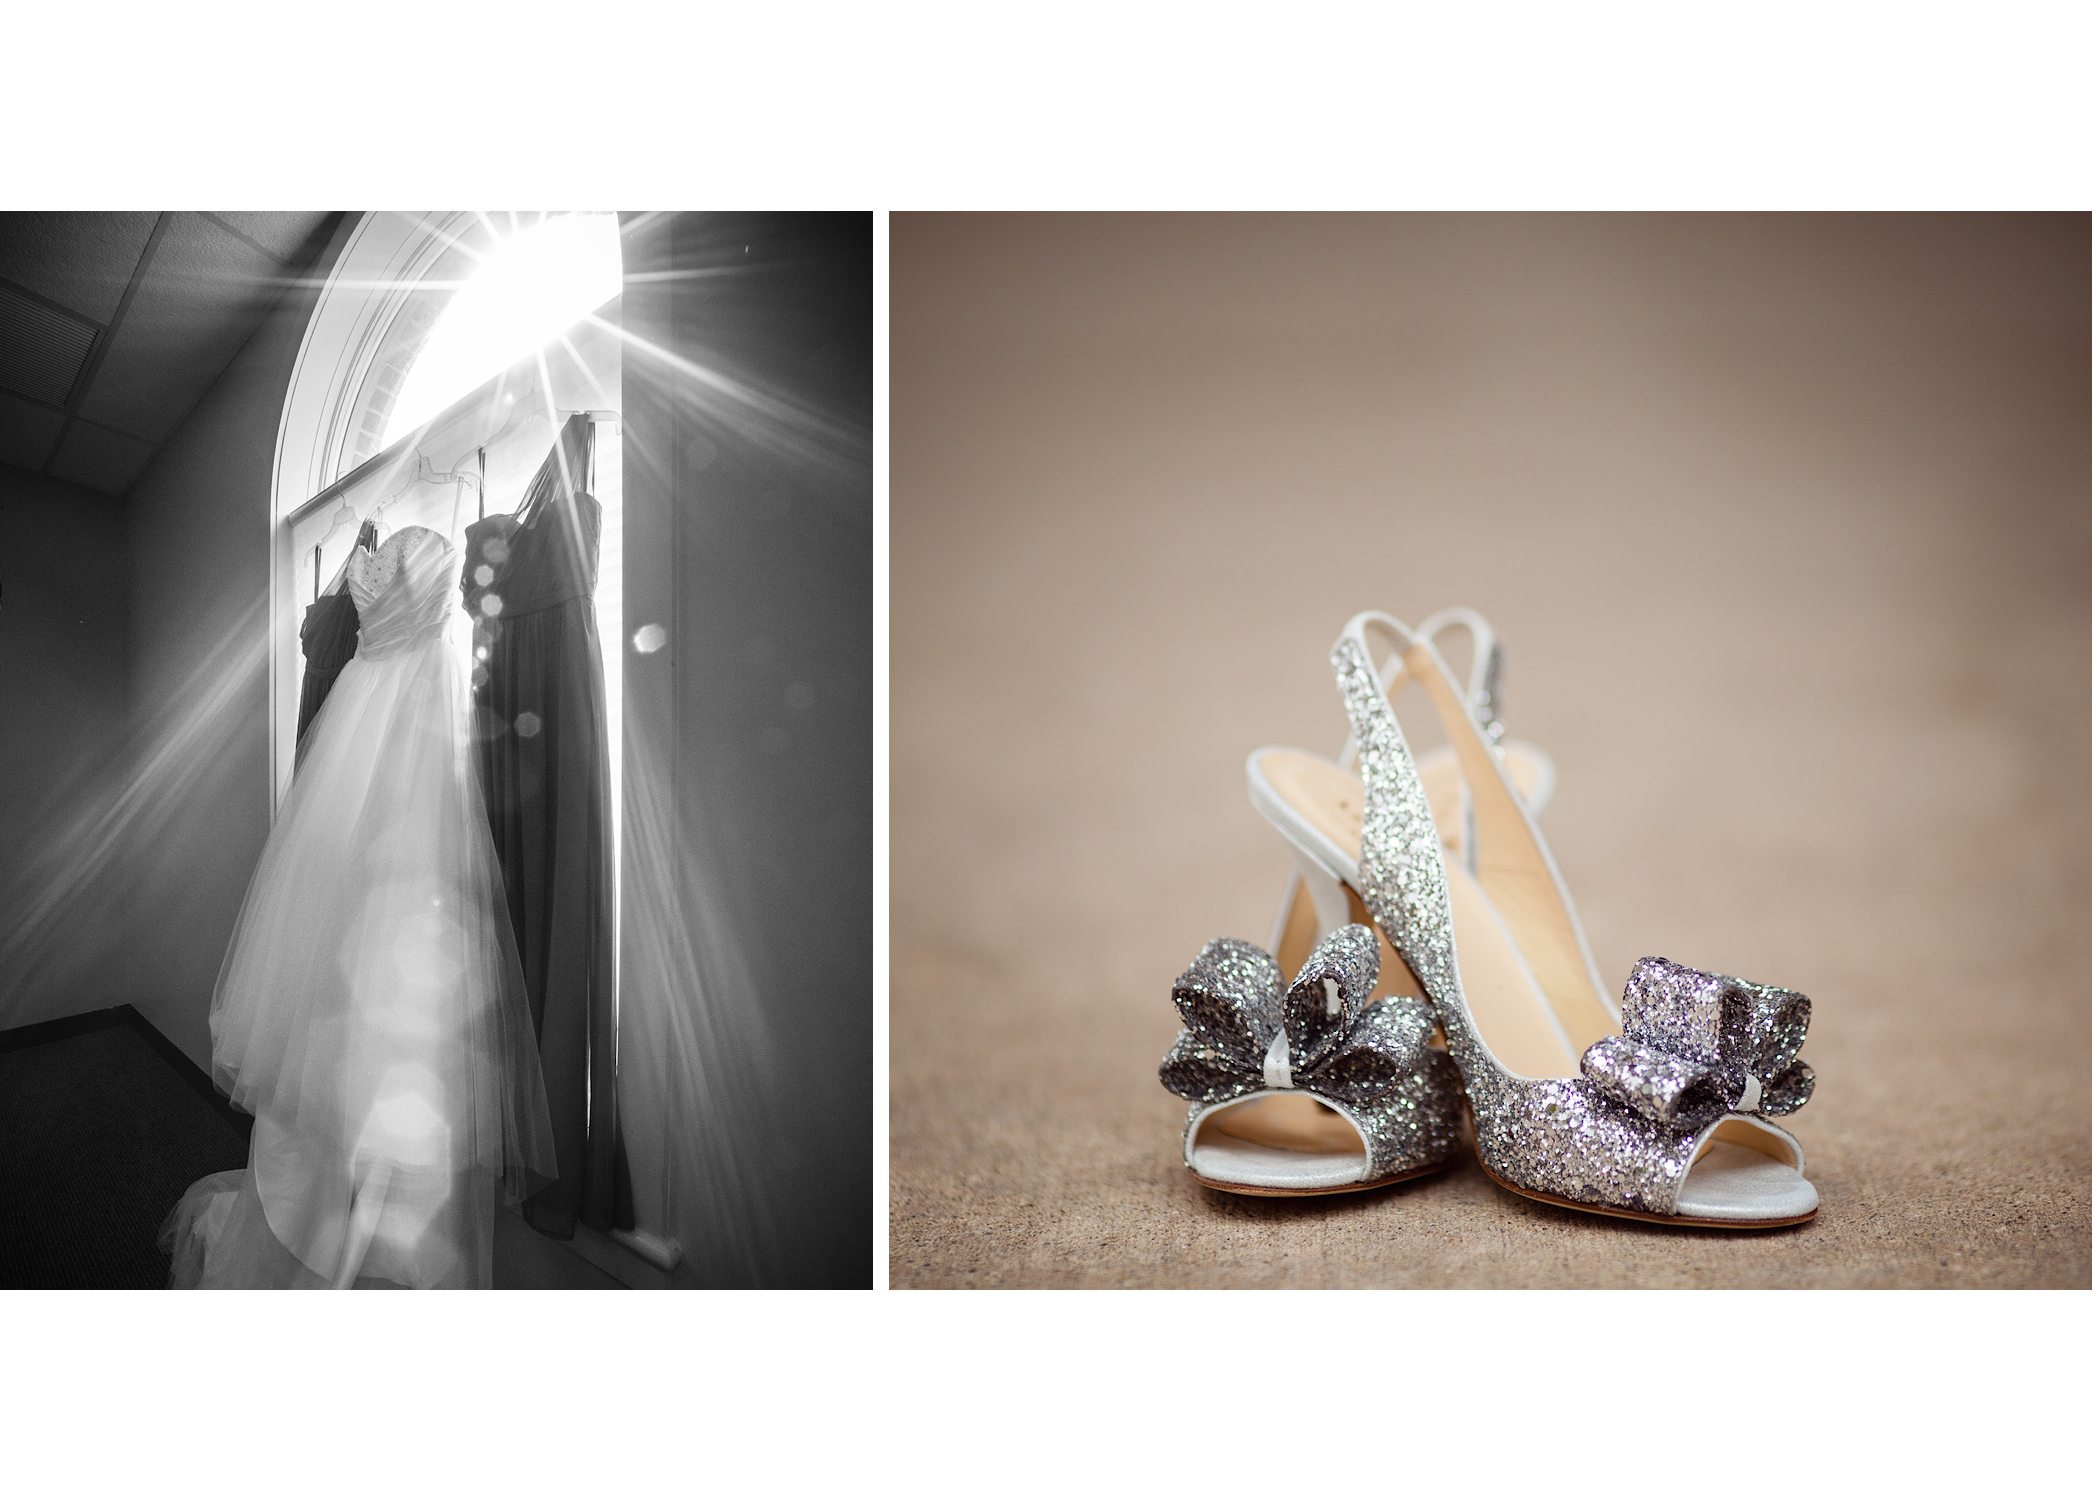 UofM_weddings_hull_melanie_reyes_001b